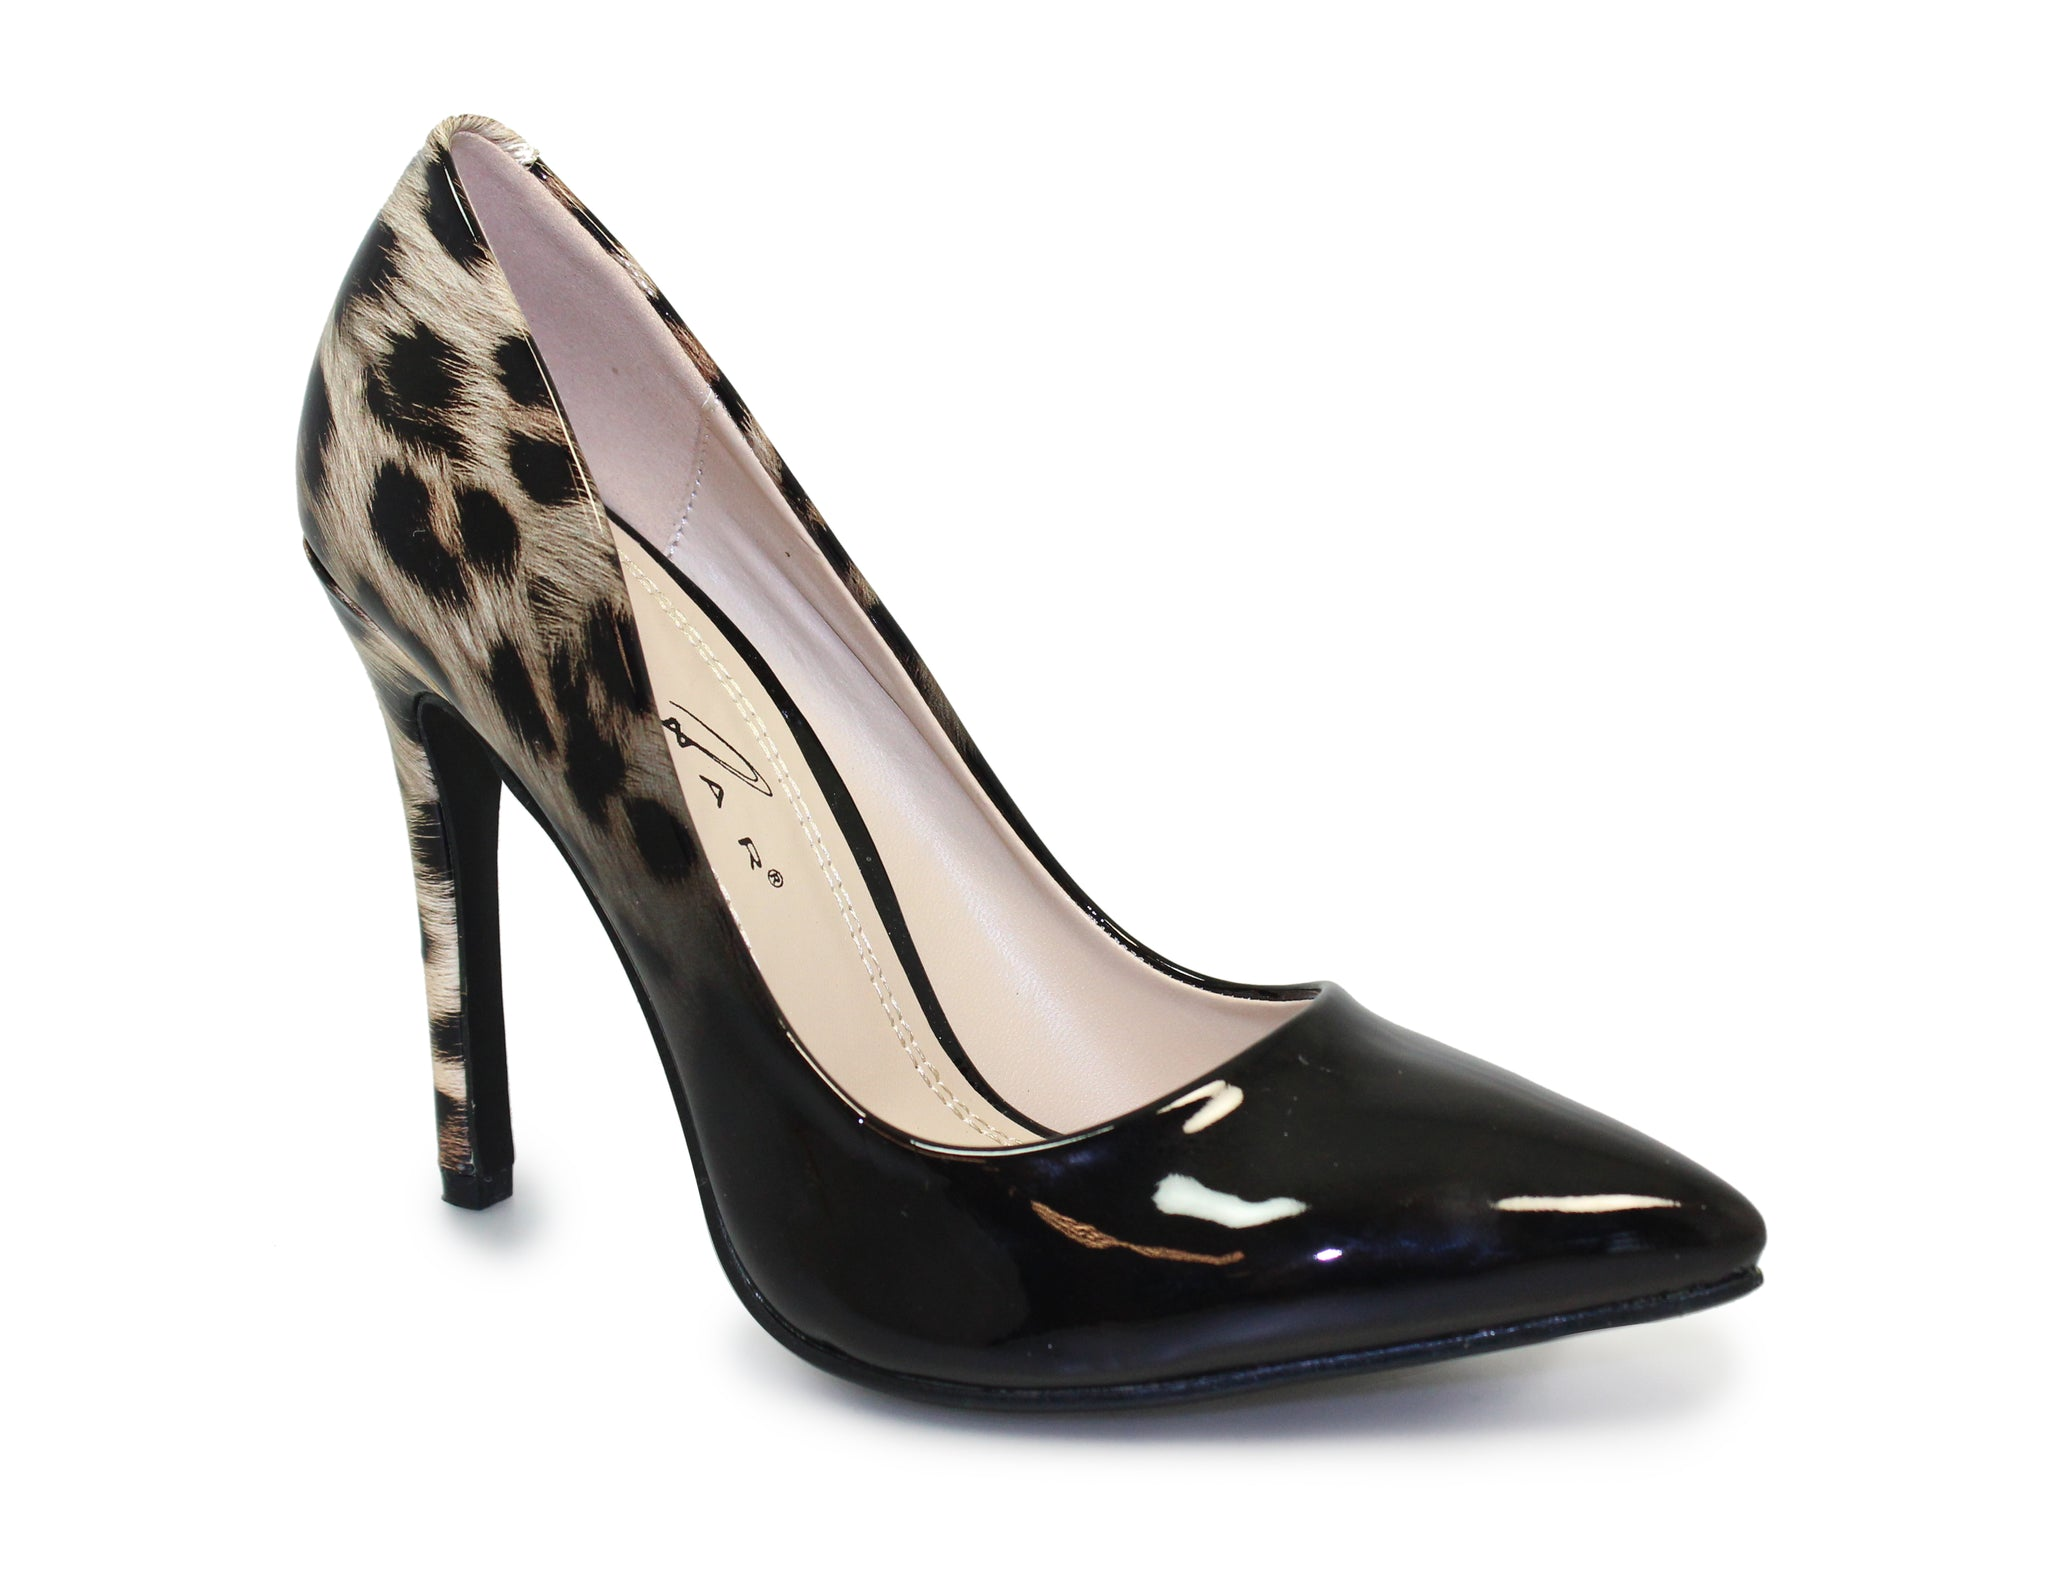 Lunar Ladies Keisha Leopard Print High Heel Court Shoe